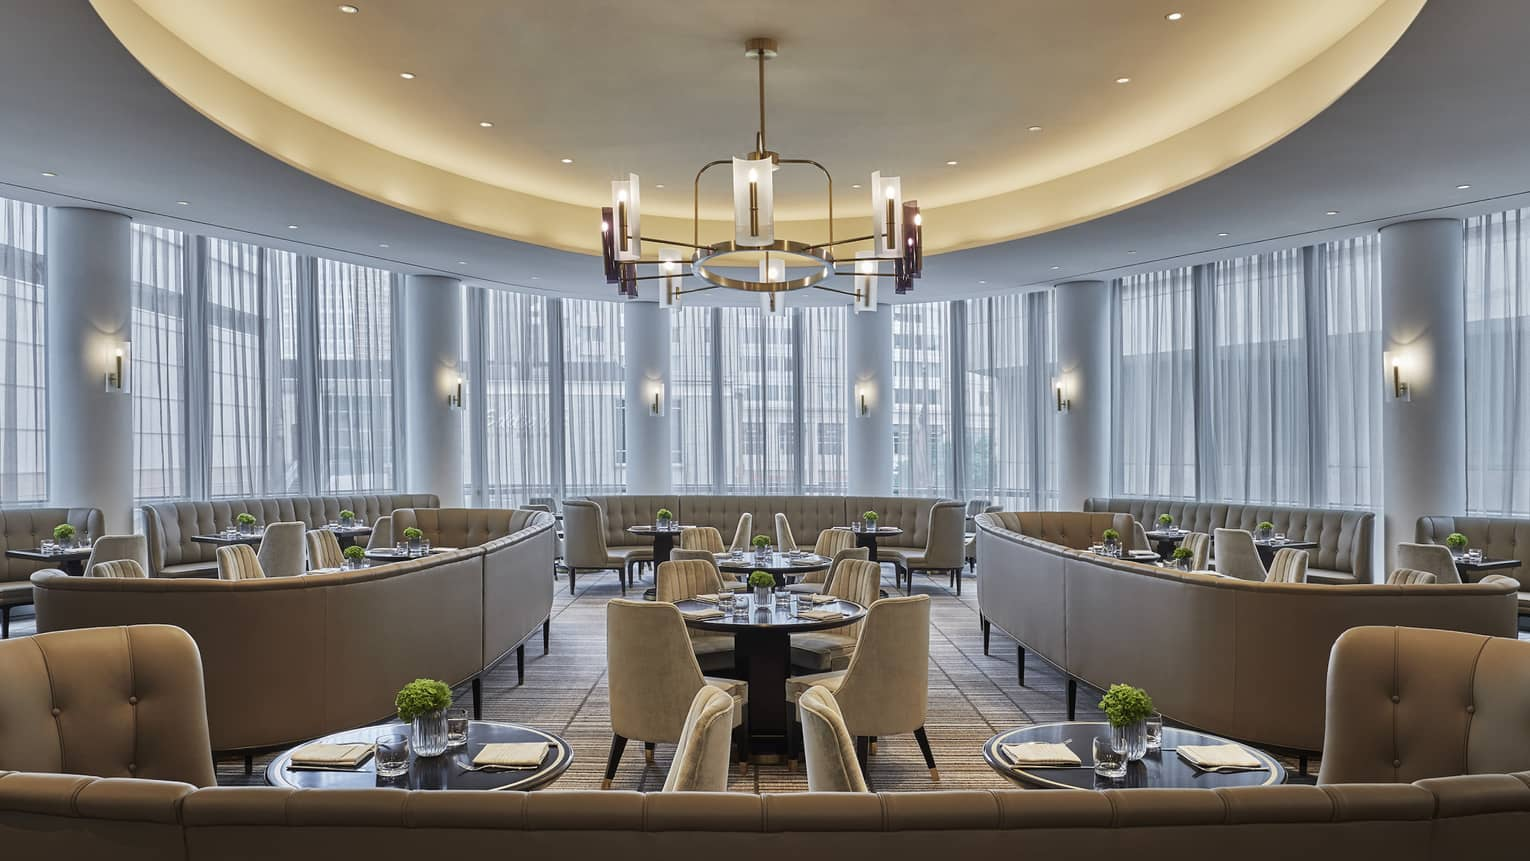 One-One restaurant is empty, but ready with guests, with tables set with menus, plates and greenery